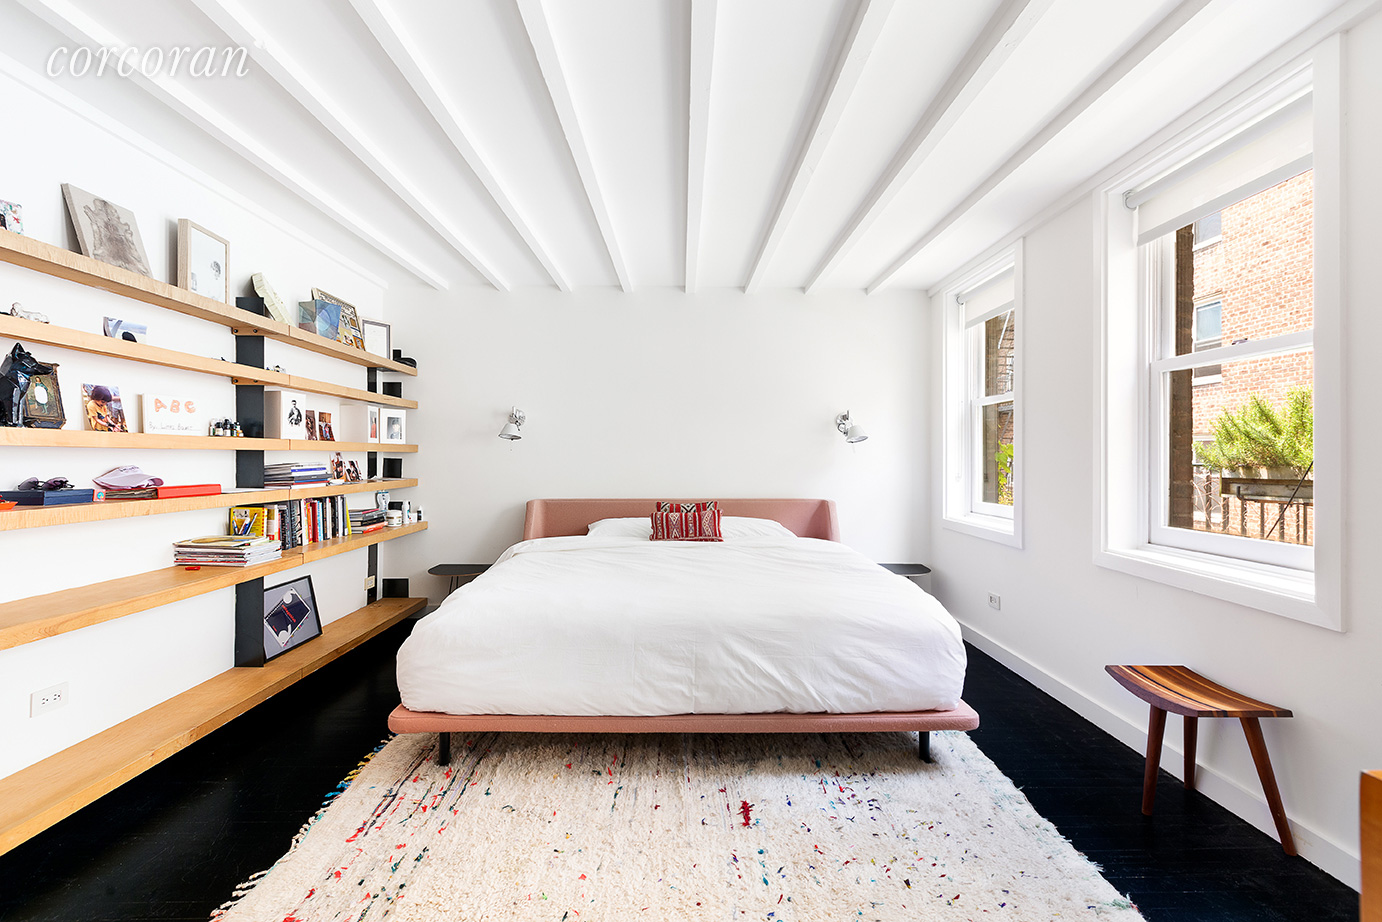 Raftered timber ceilings have been given a lick of paint